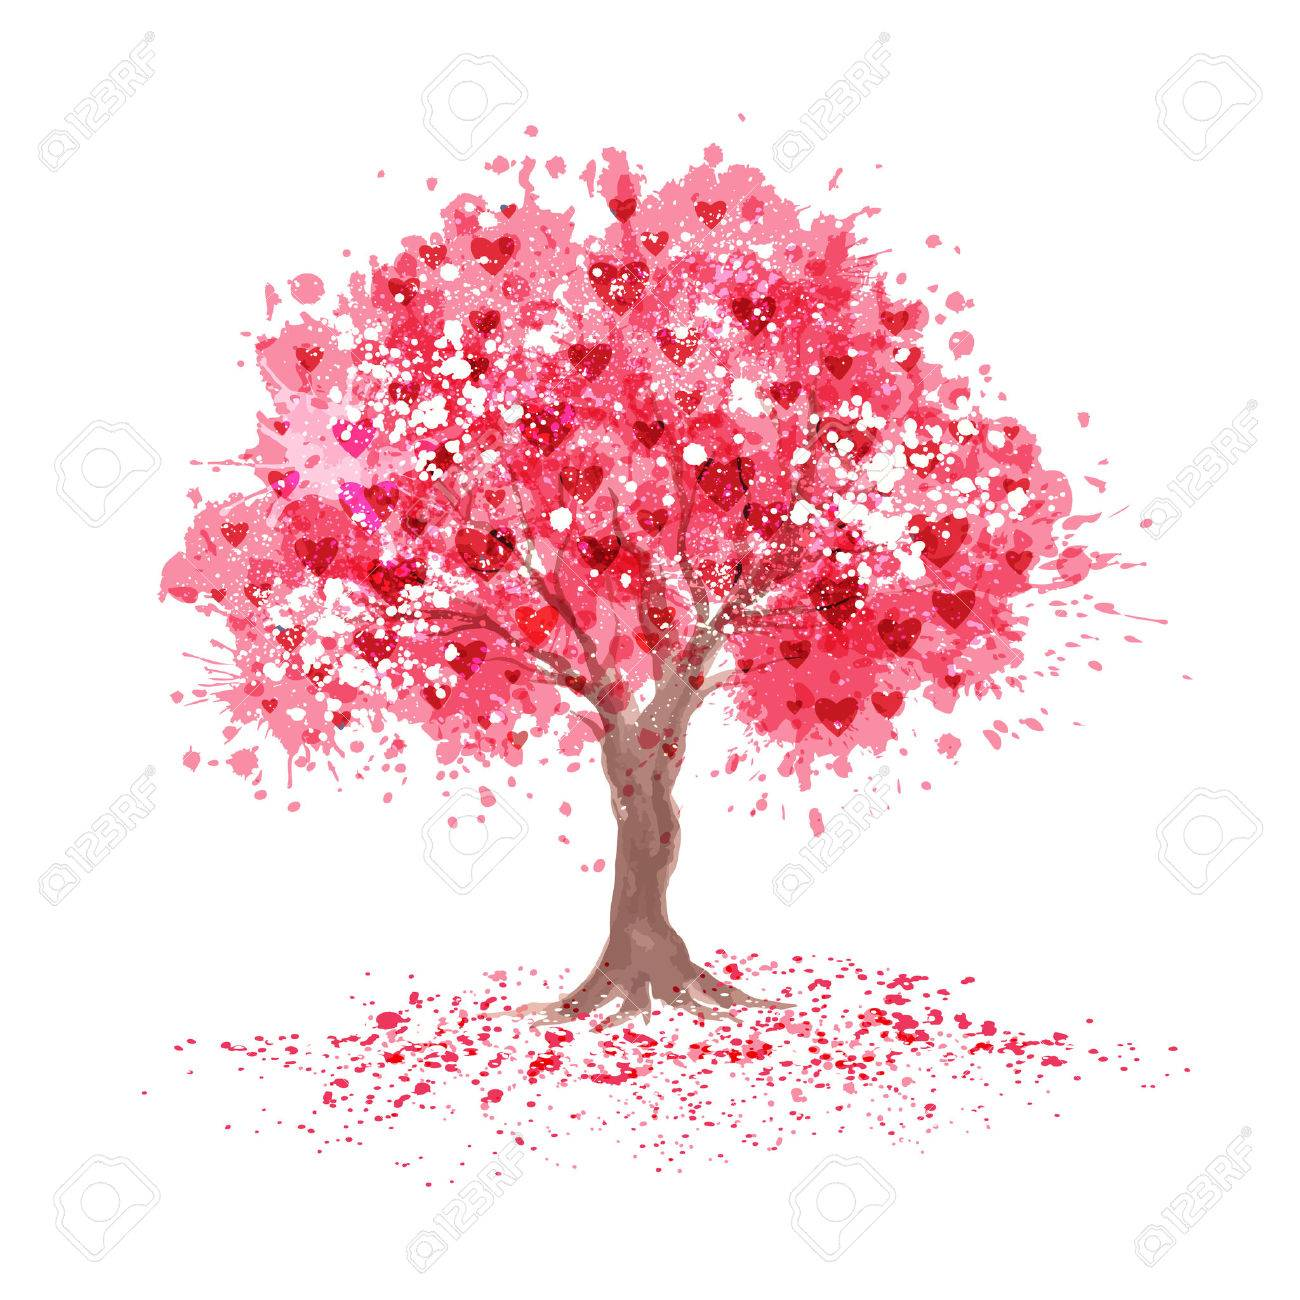 Cherry blossom tree with hearts symbols in abstraction style. - 57484133